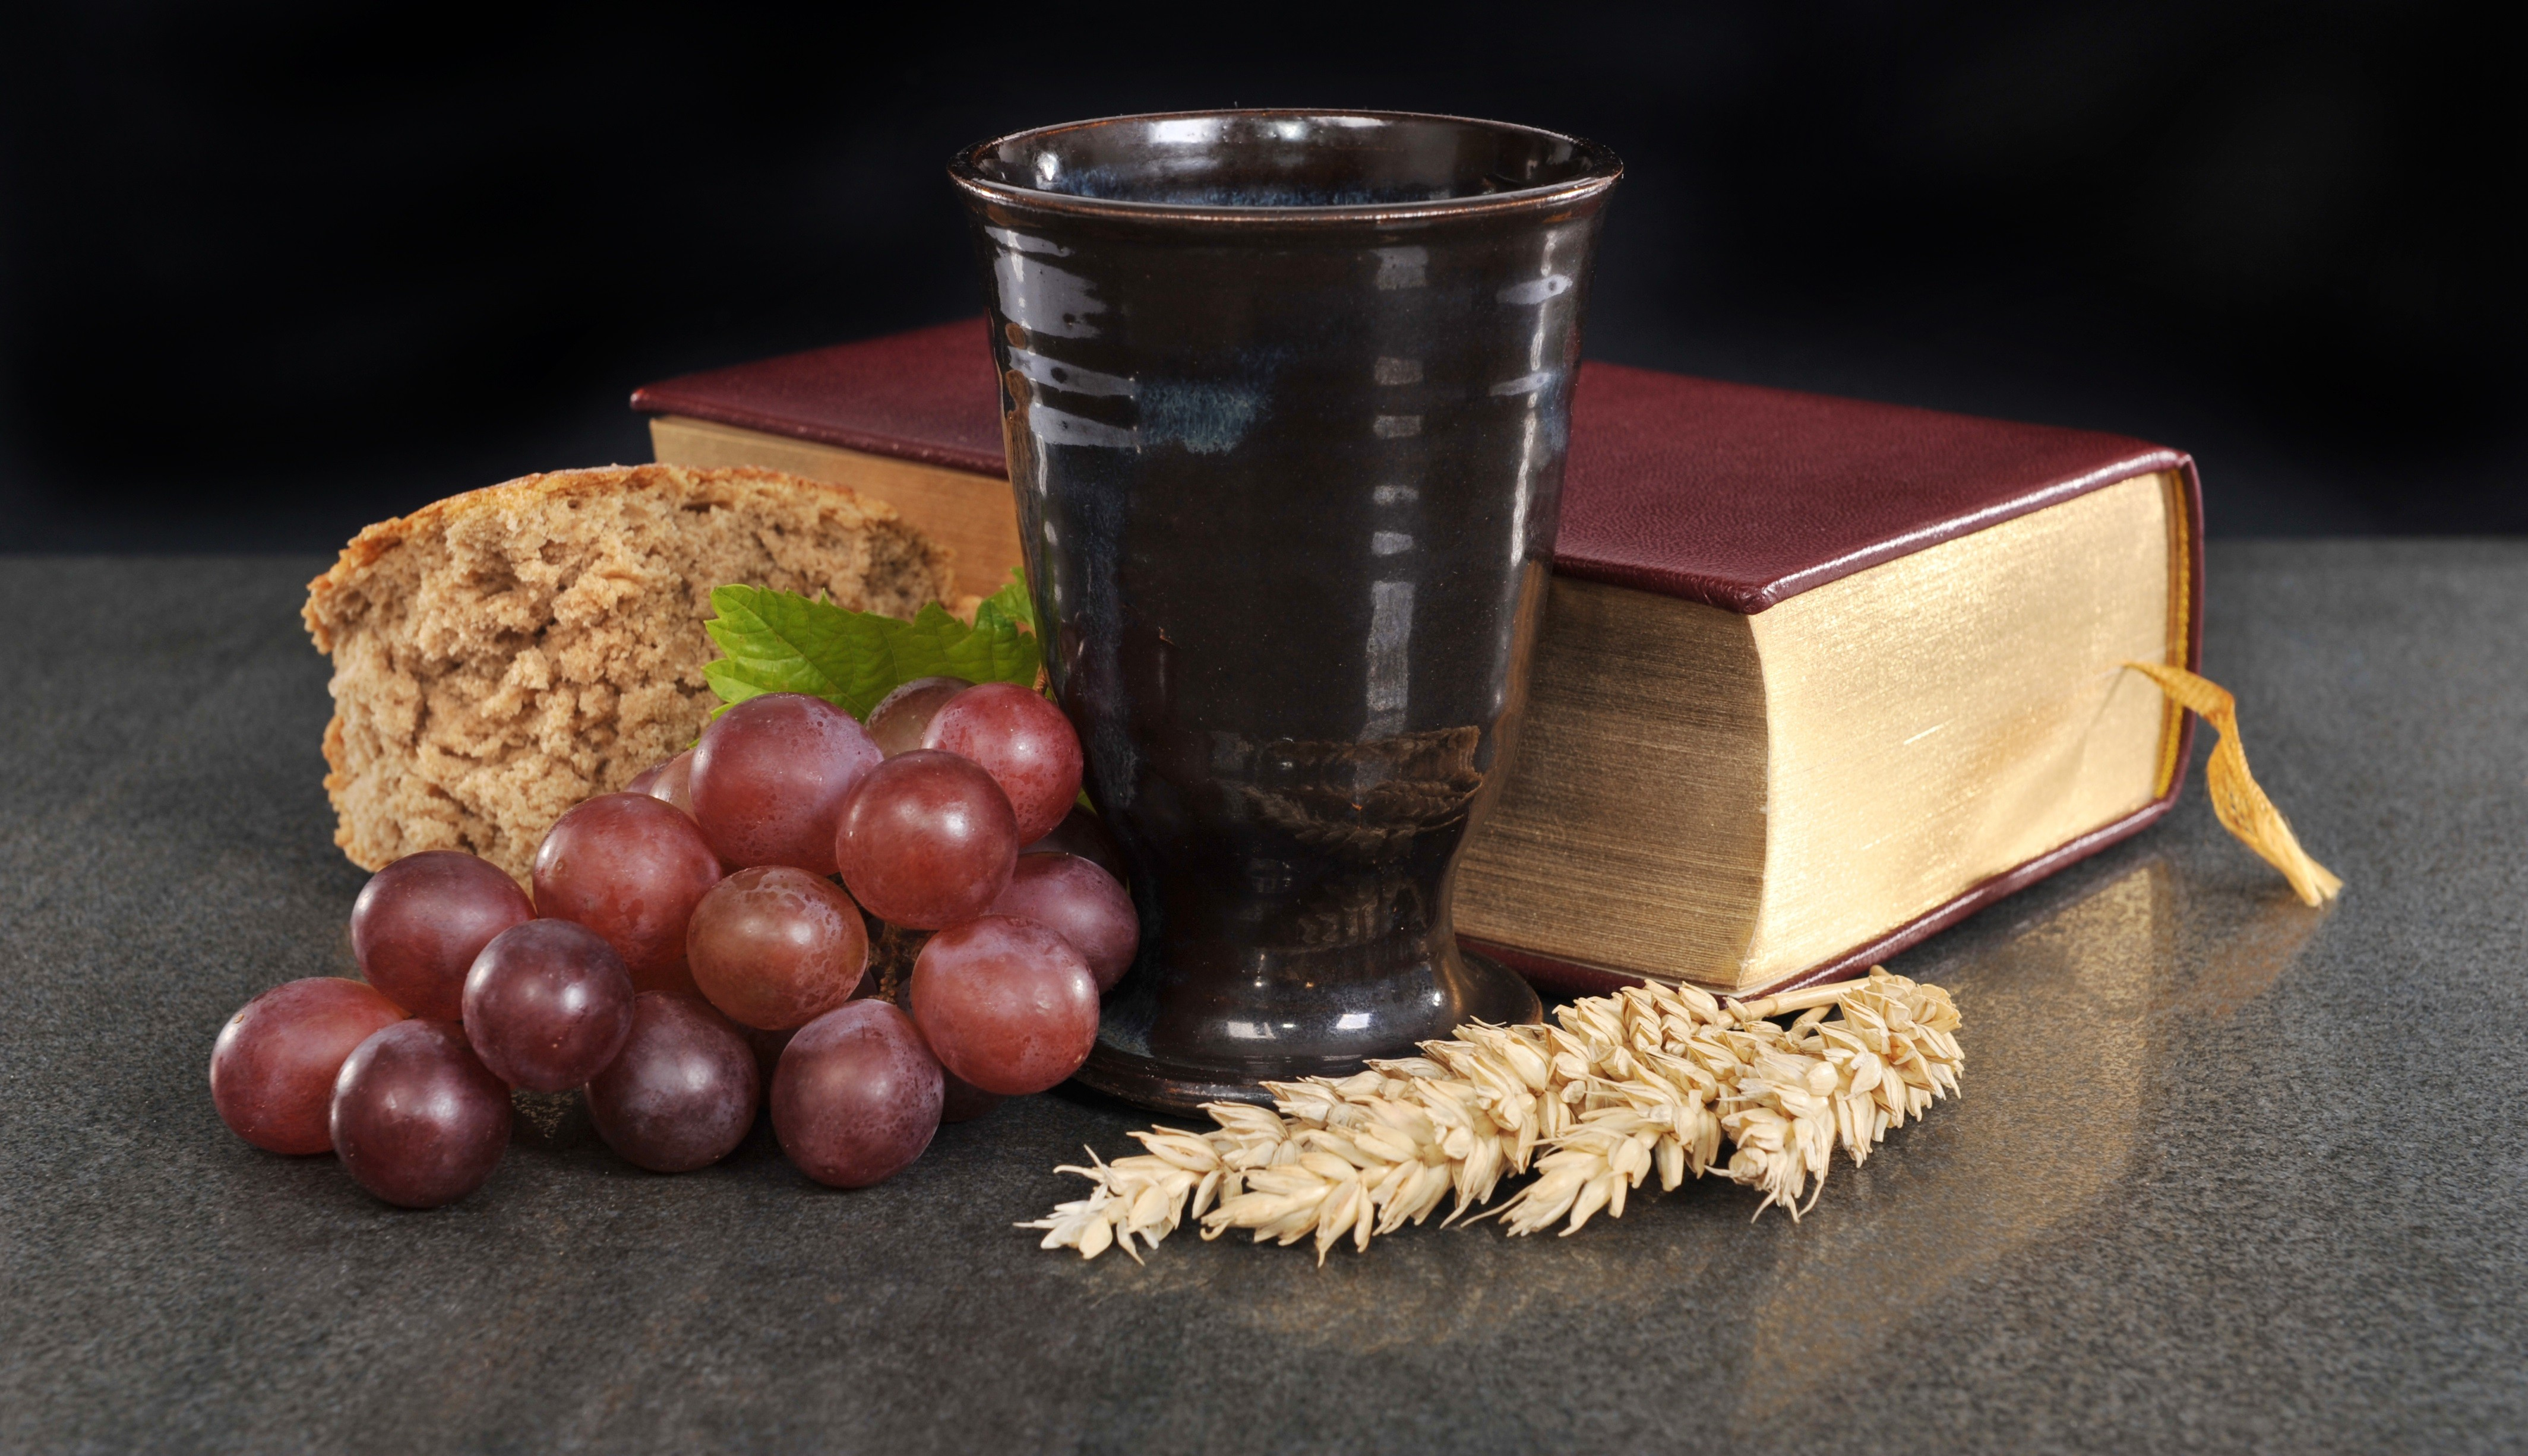 Messwein - mug with wine, bread, bunch of grapes and Bible